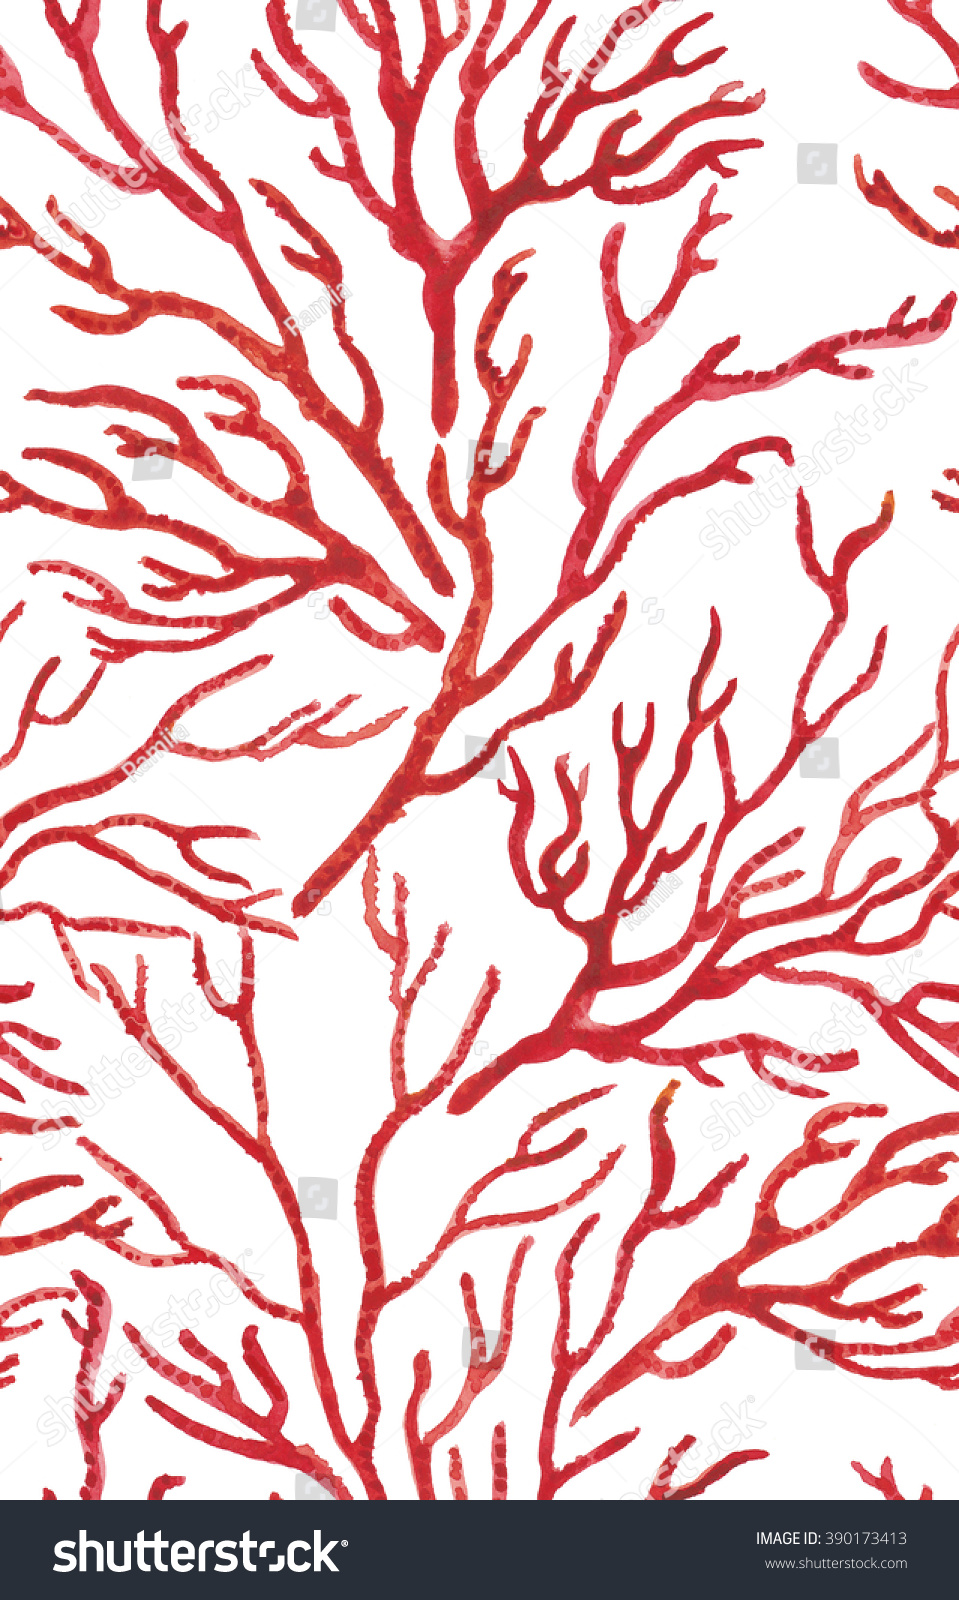 Red coral painting popular red coral print buy cheap red coral print - Watercolor Painting Seamless Sea Coral Print Pattern On White Background